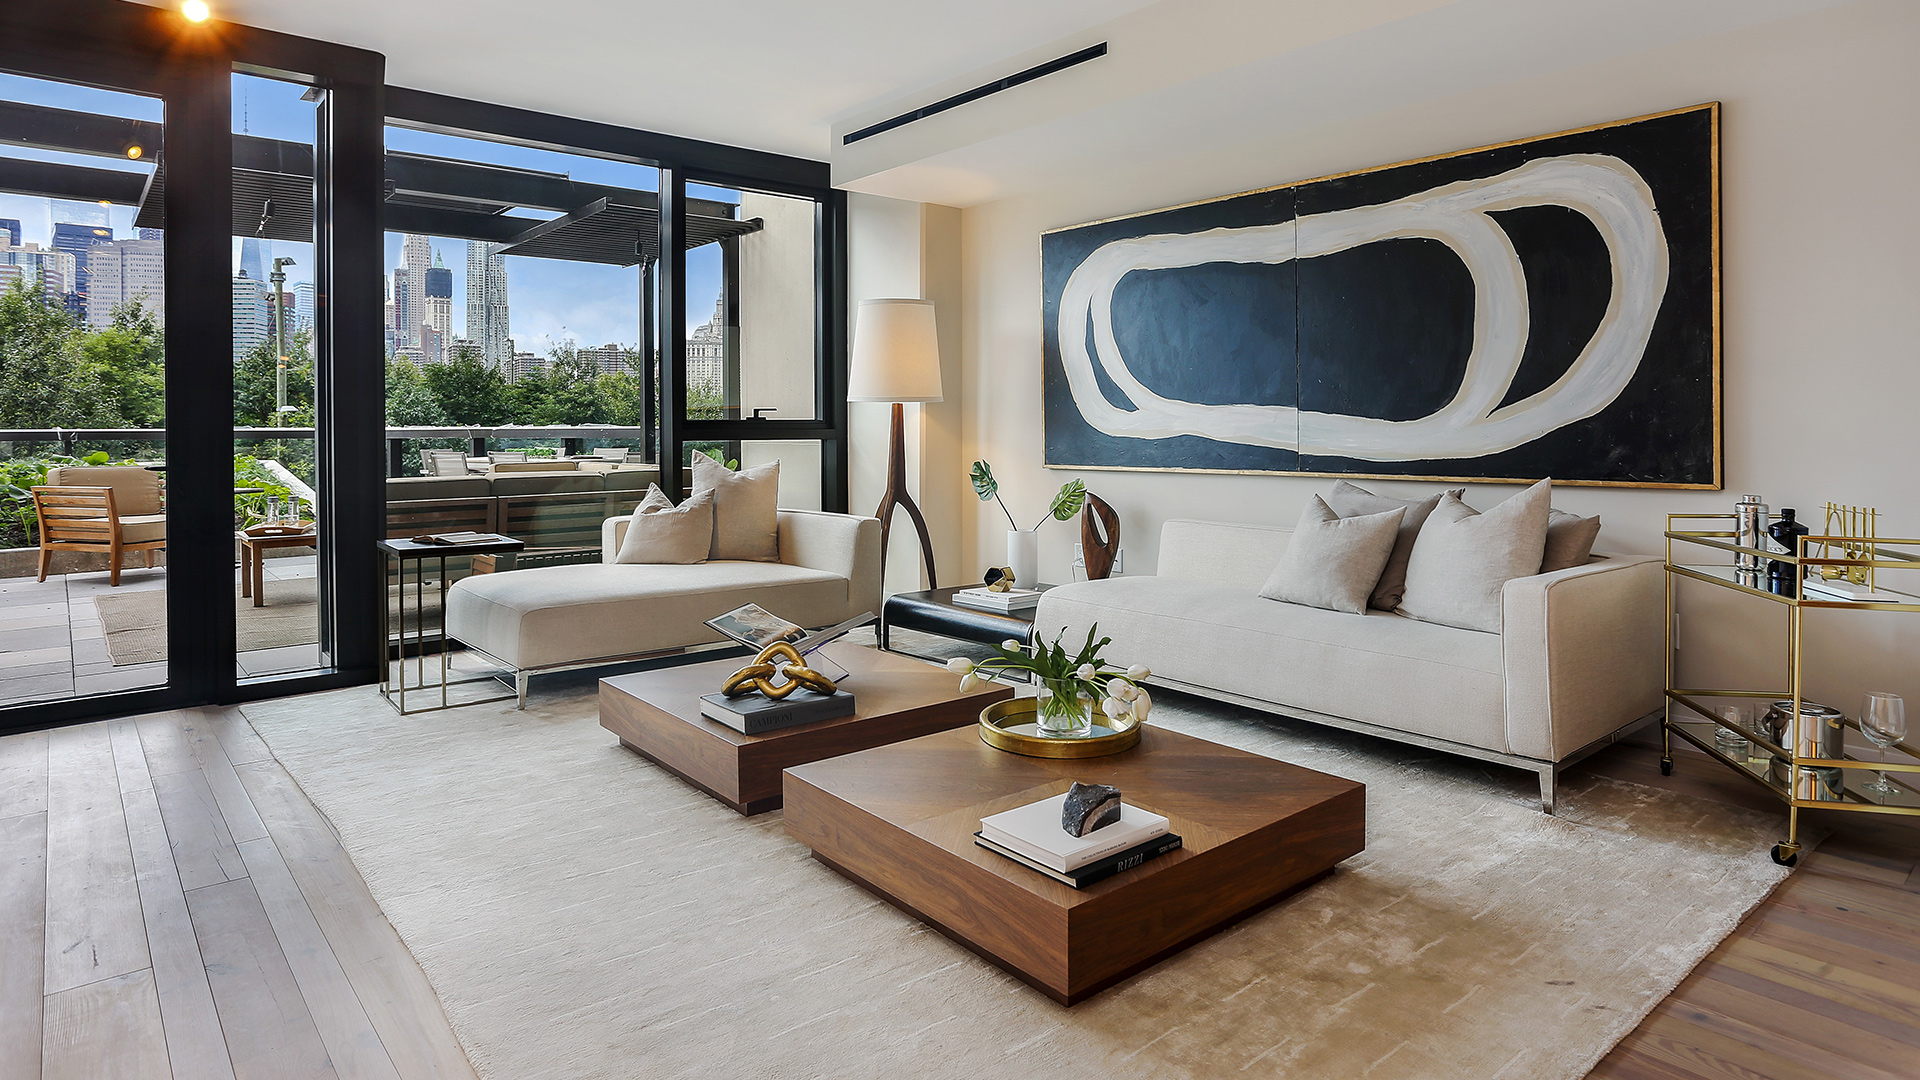 Condos for sale in brooklyn pierhouse at brooklyn bridge for Living room brooklyn 86 st